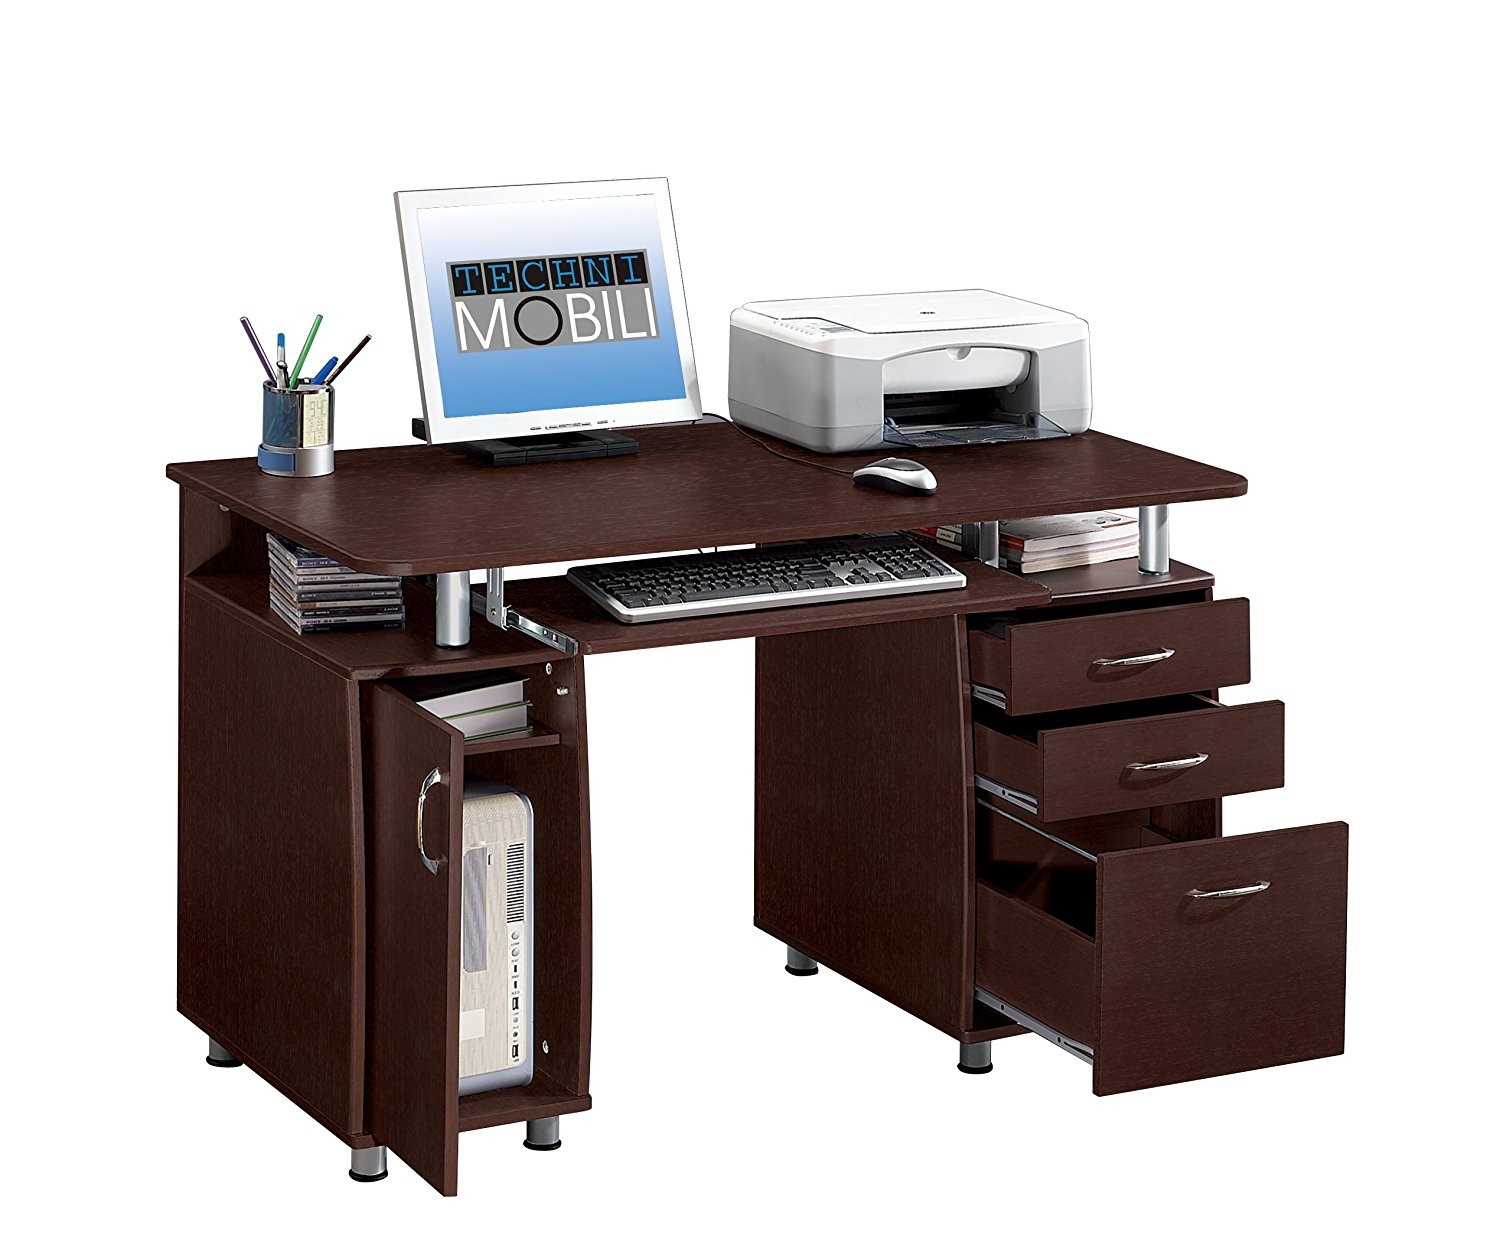 TECHNI MOBILI Complete Workstation Computer Desk with Storage - Chocolate